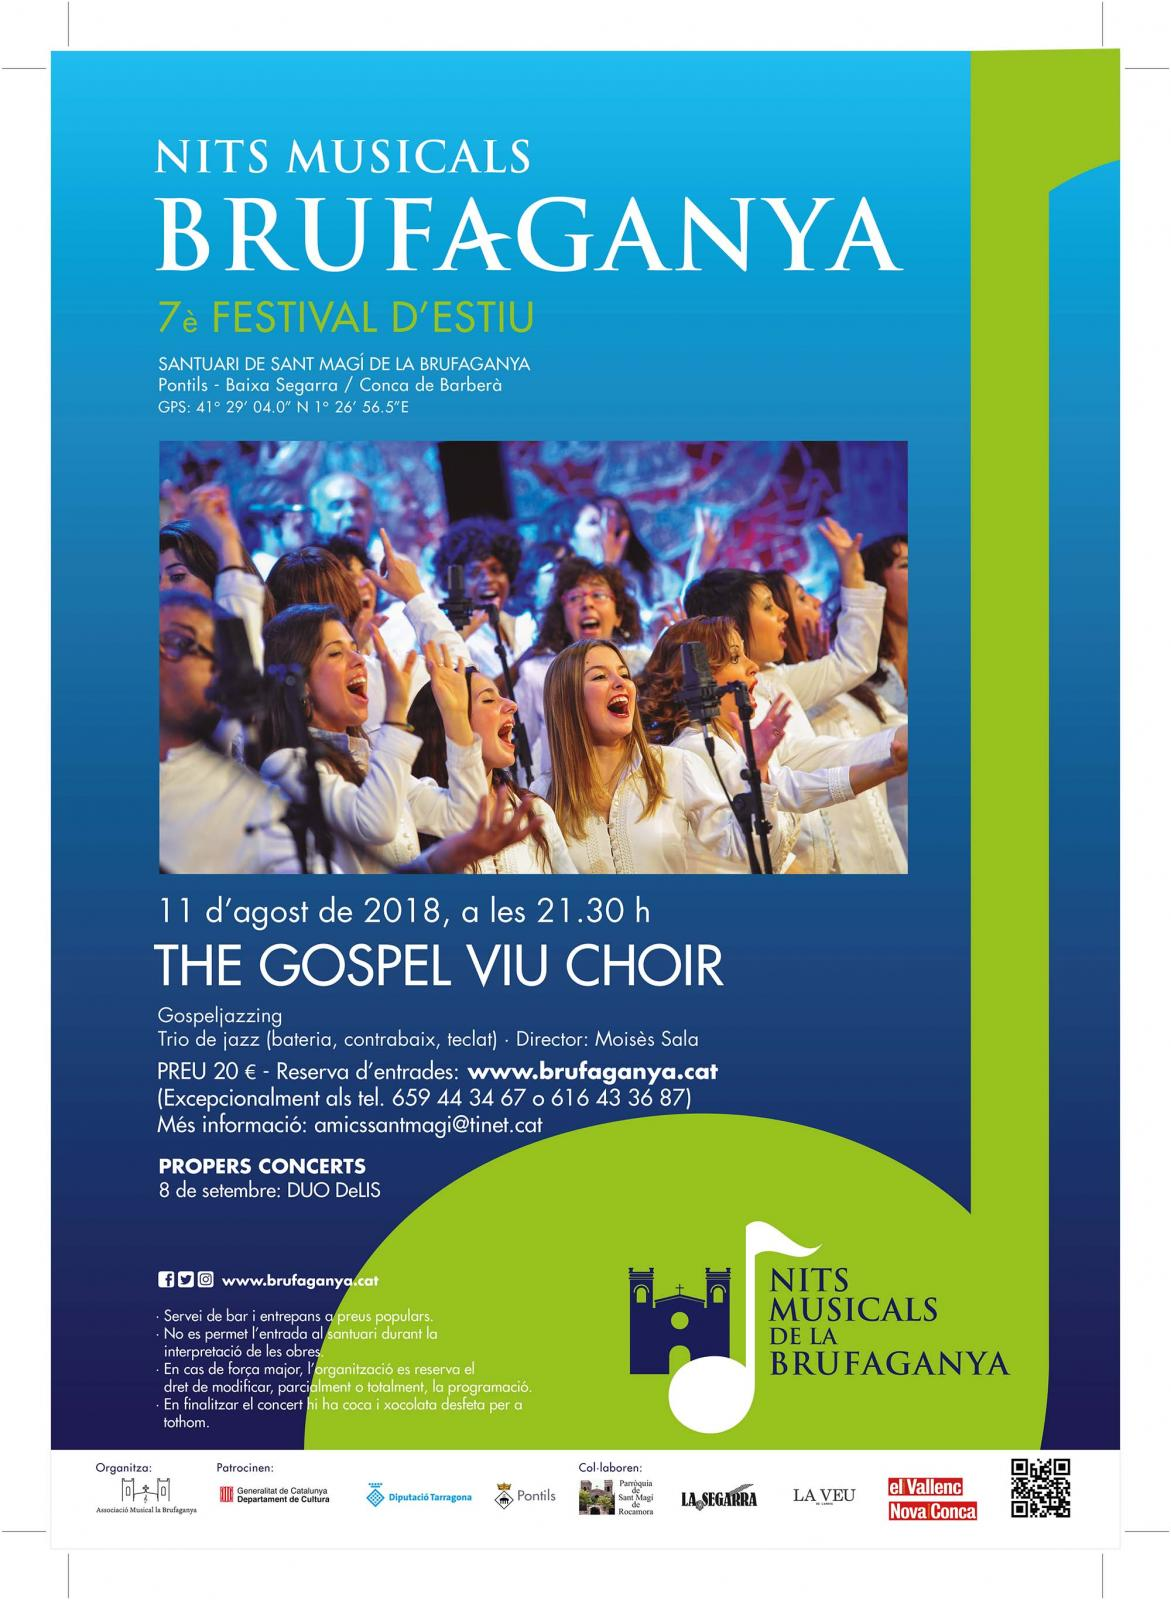 THE GOSPEL VIU CHOIR (Nits Musicals de la Brufaganya)